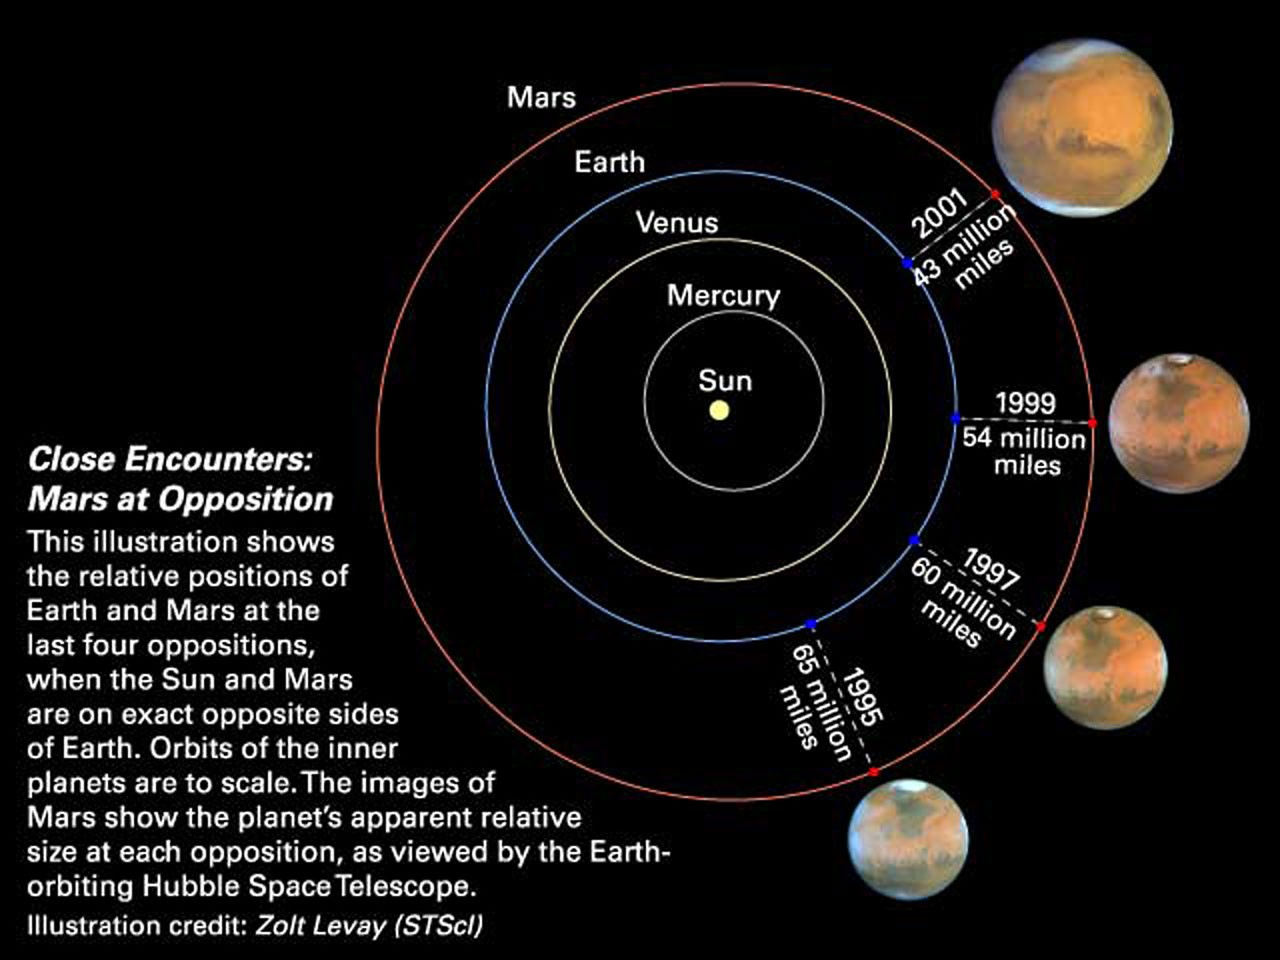 Close Encounters Mars At Opposition Diagram